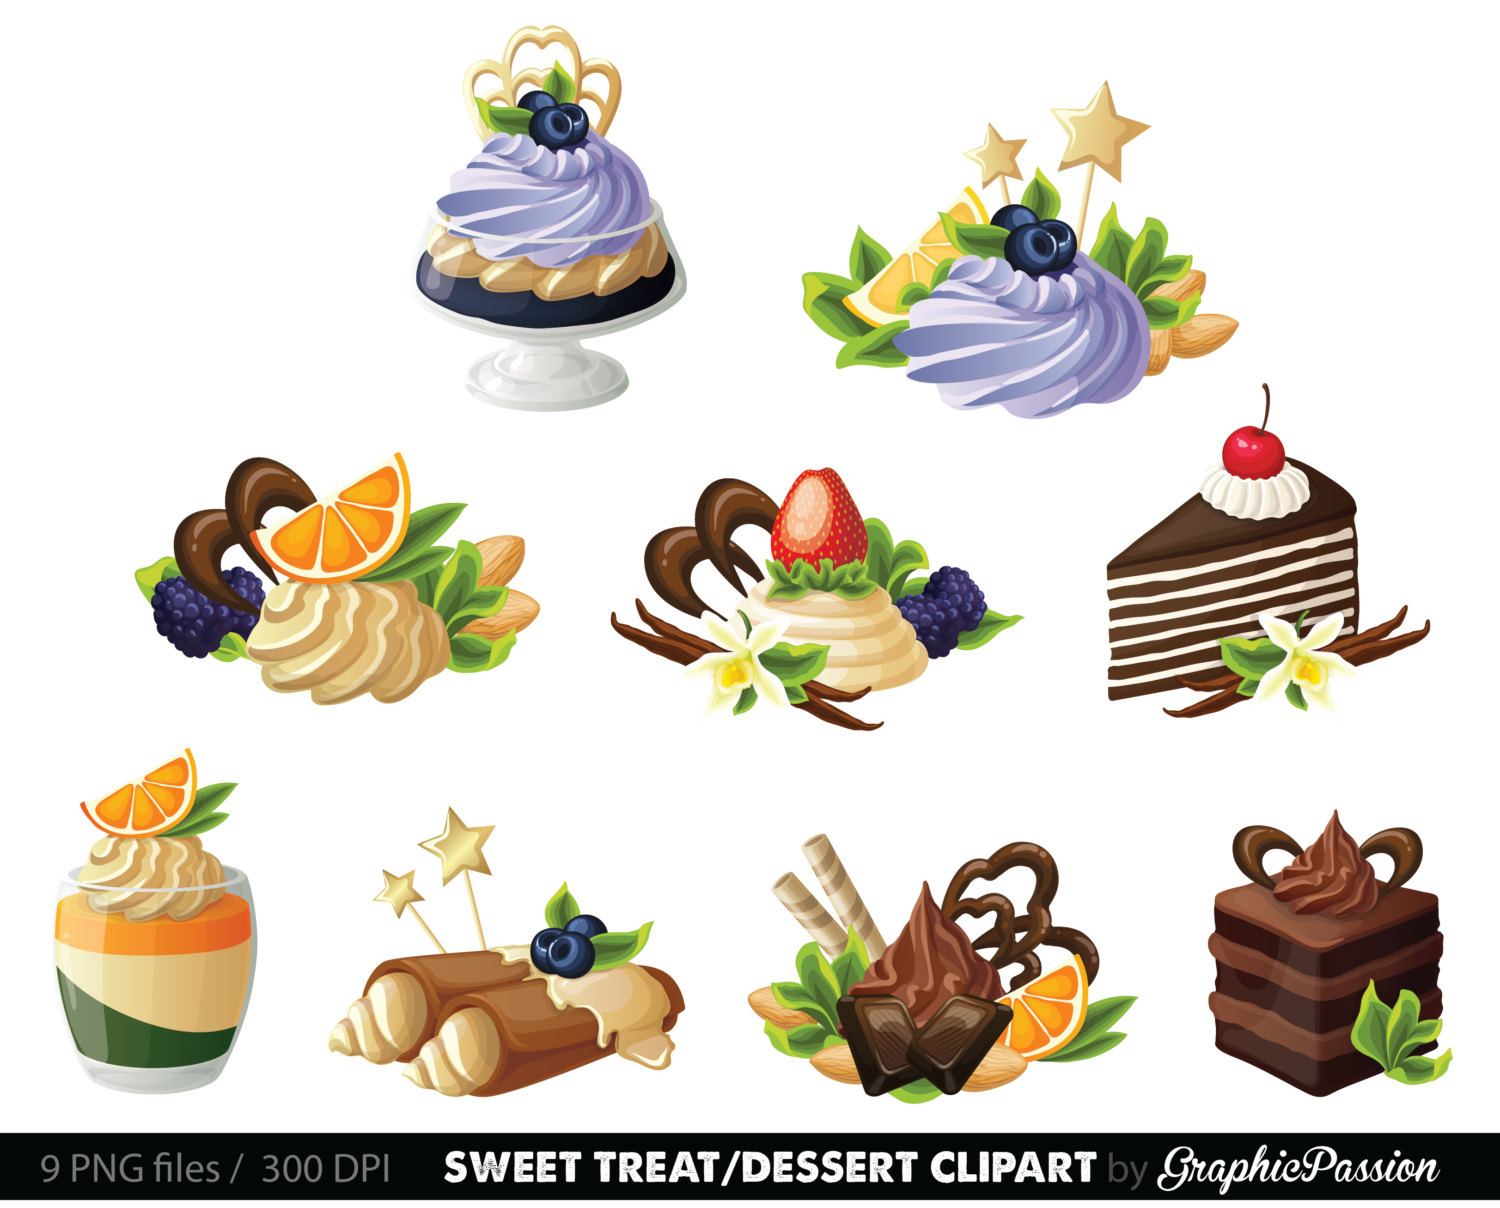 Pastry clipart sweet treat Dessert Clipart dessert collection Border